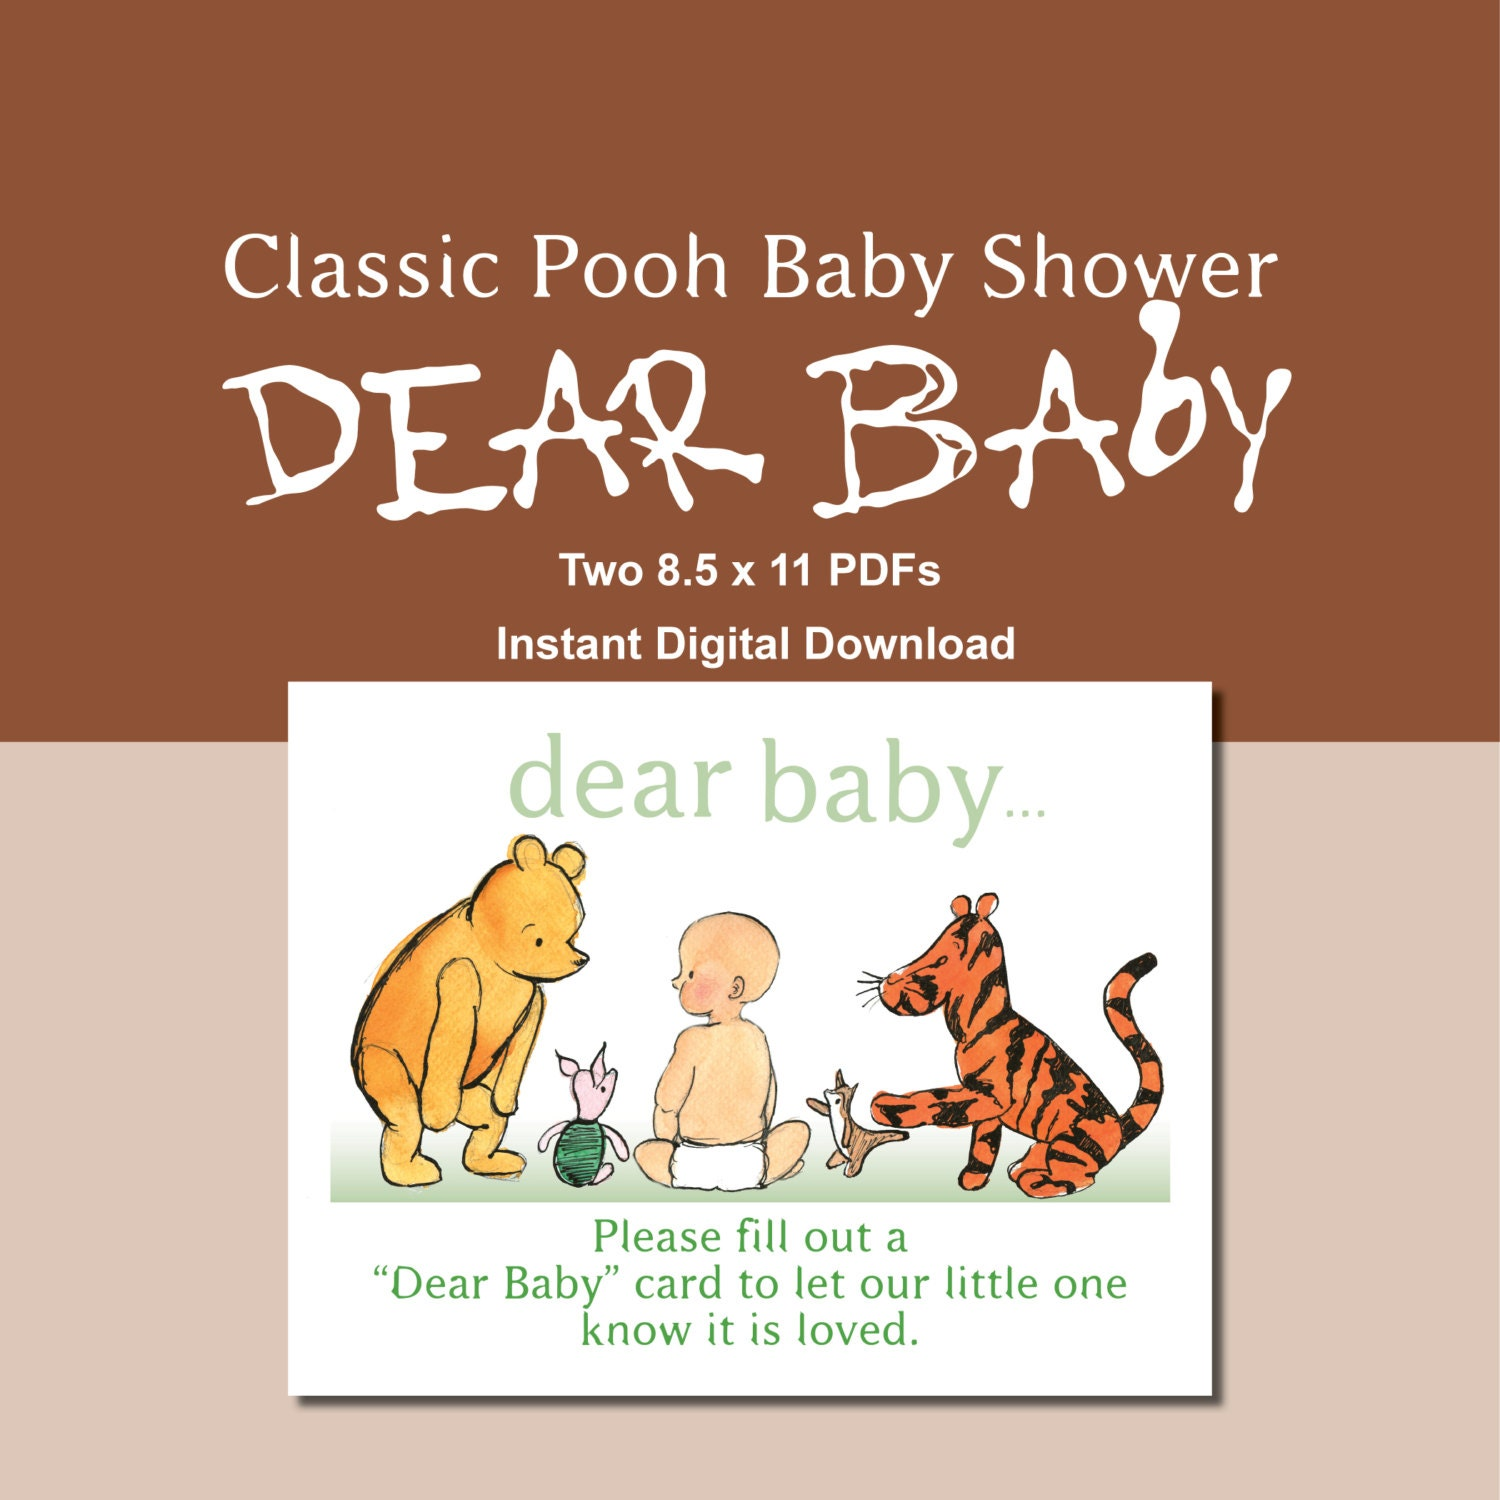 classic pooh baby shower dear baby cards